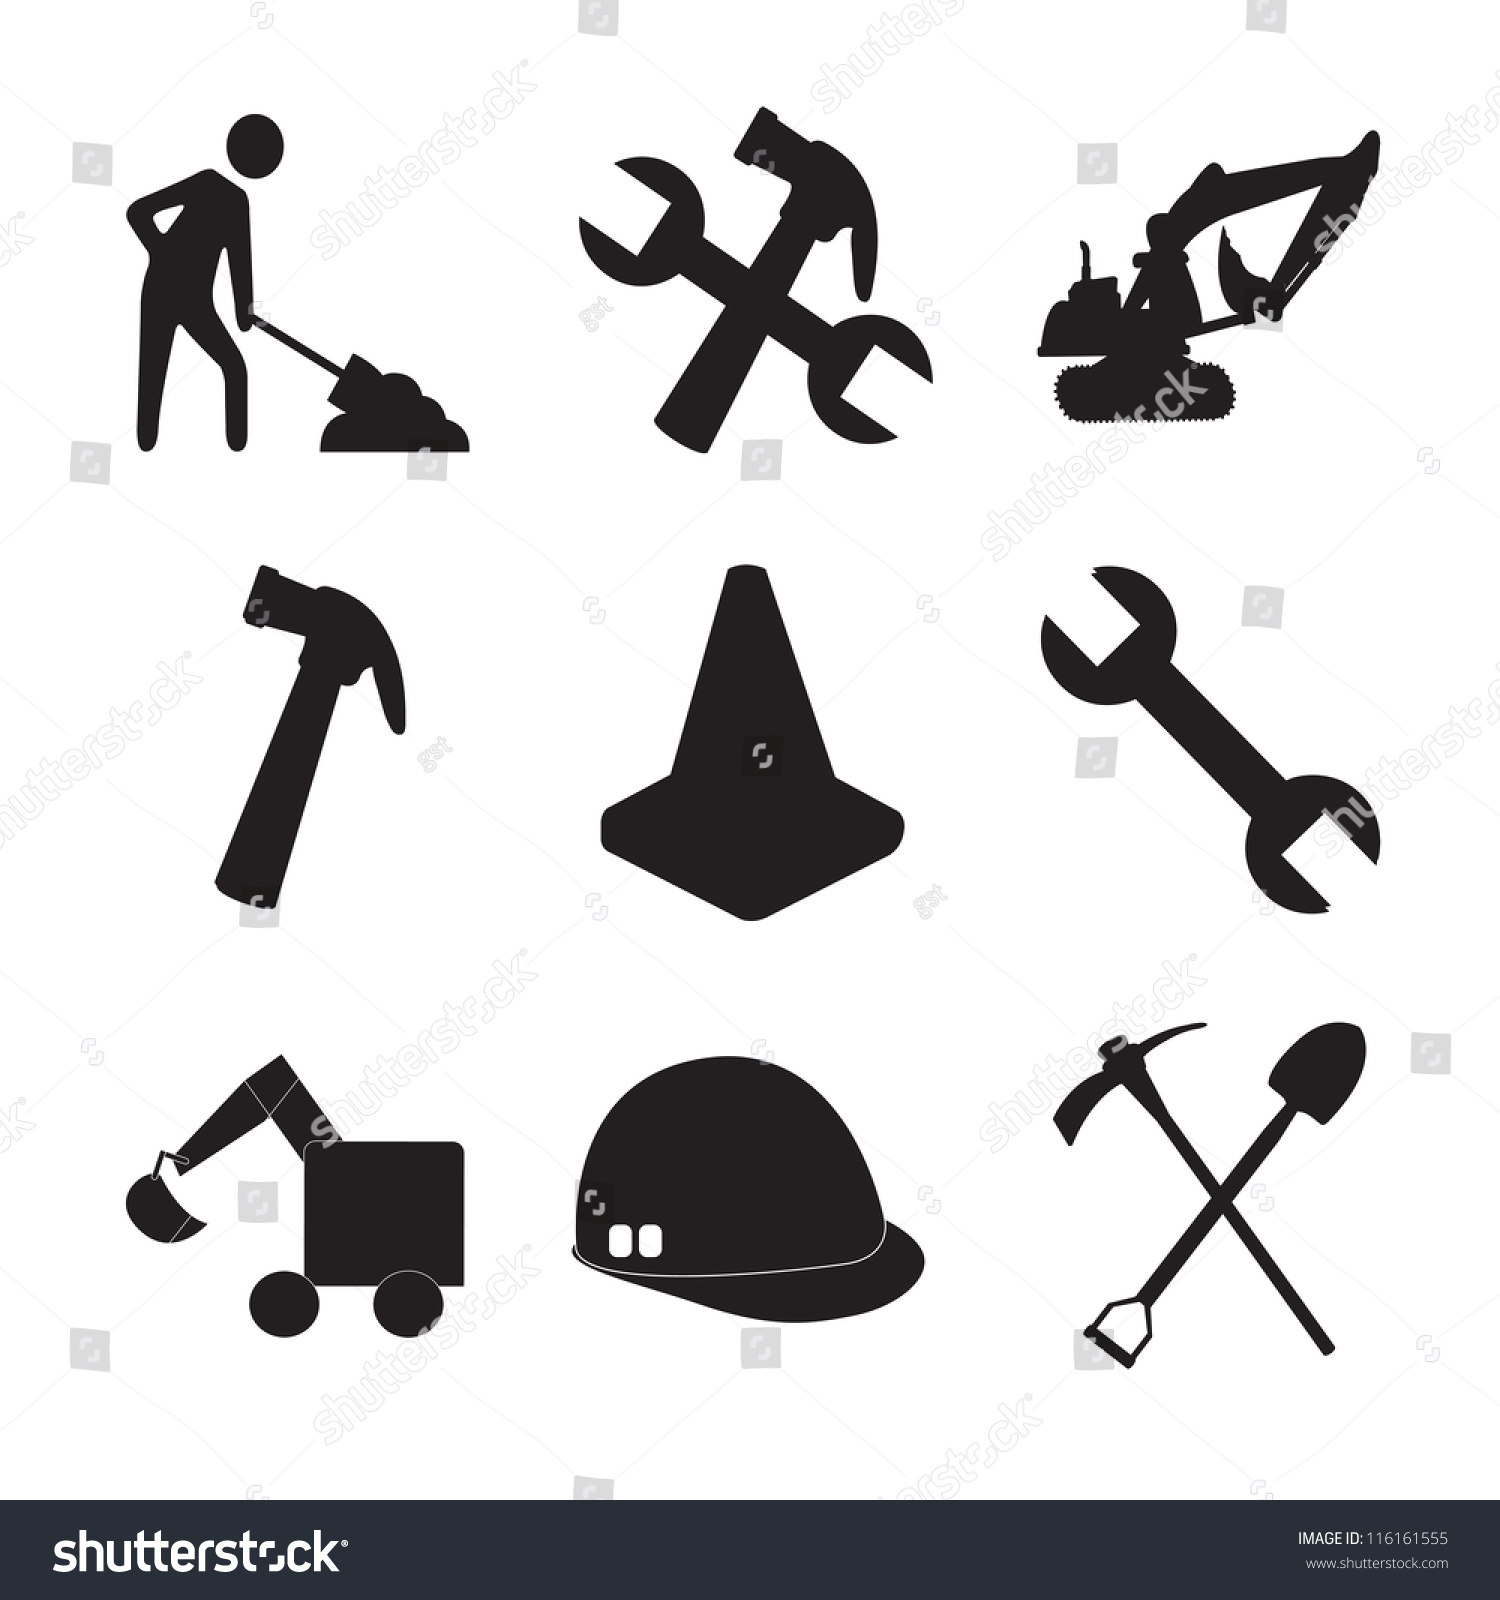 Construction Tools Silhouettes Man Working Stock Vector ...